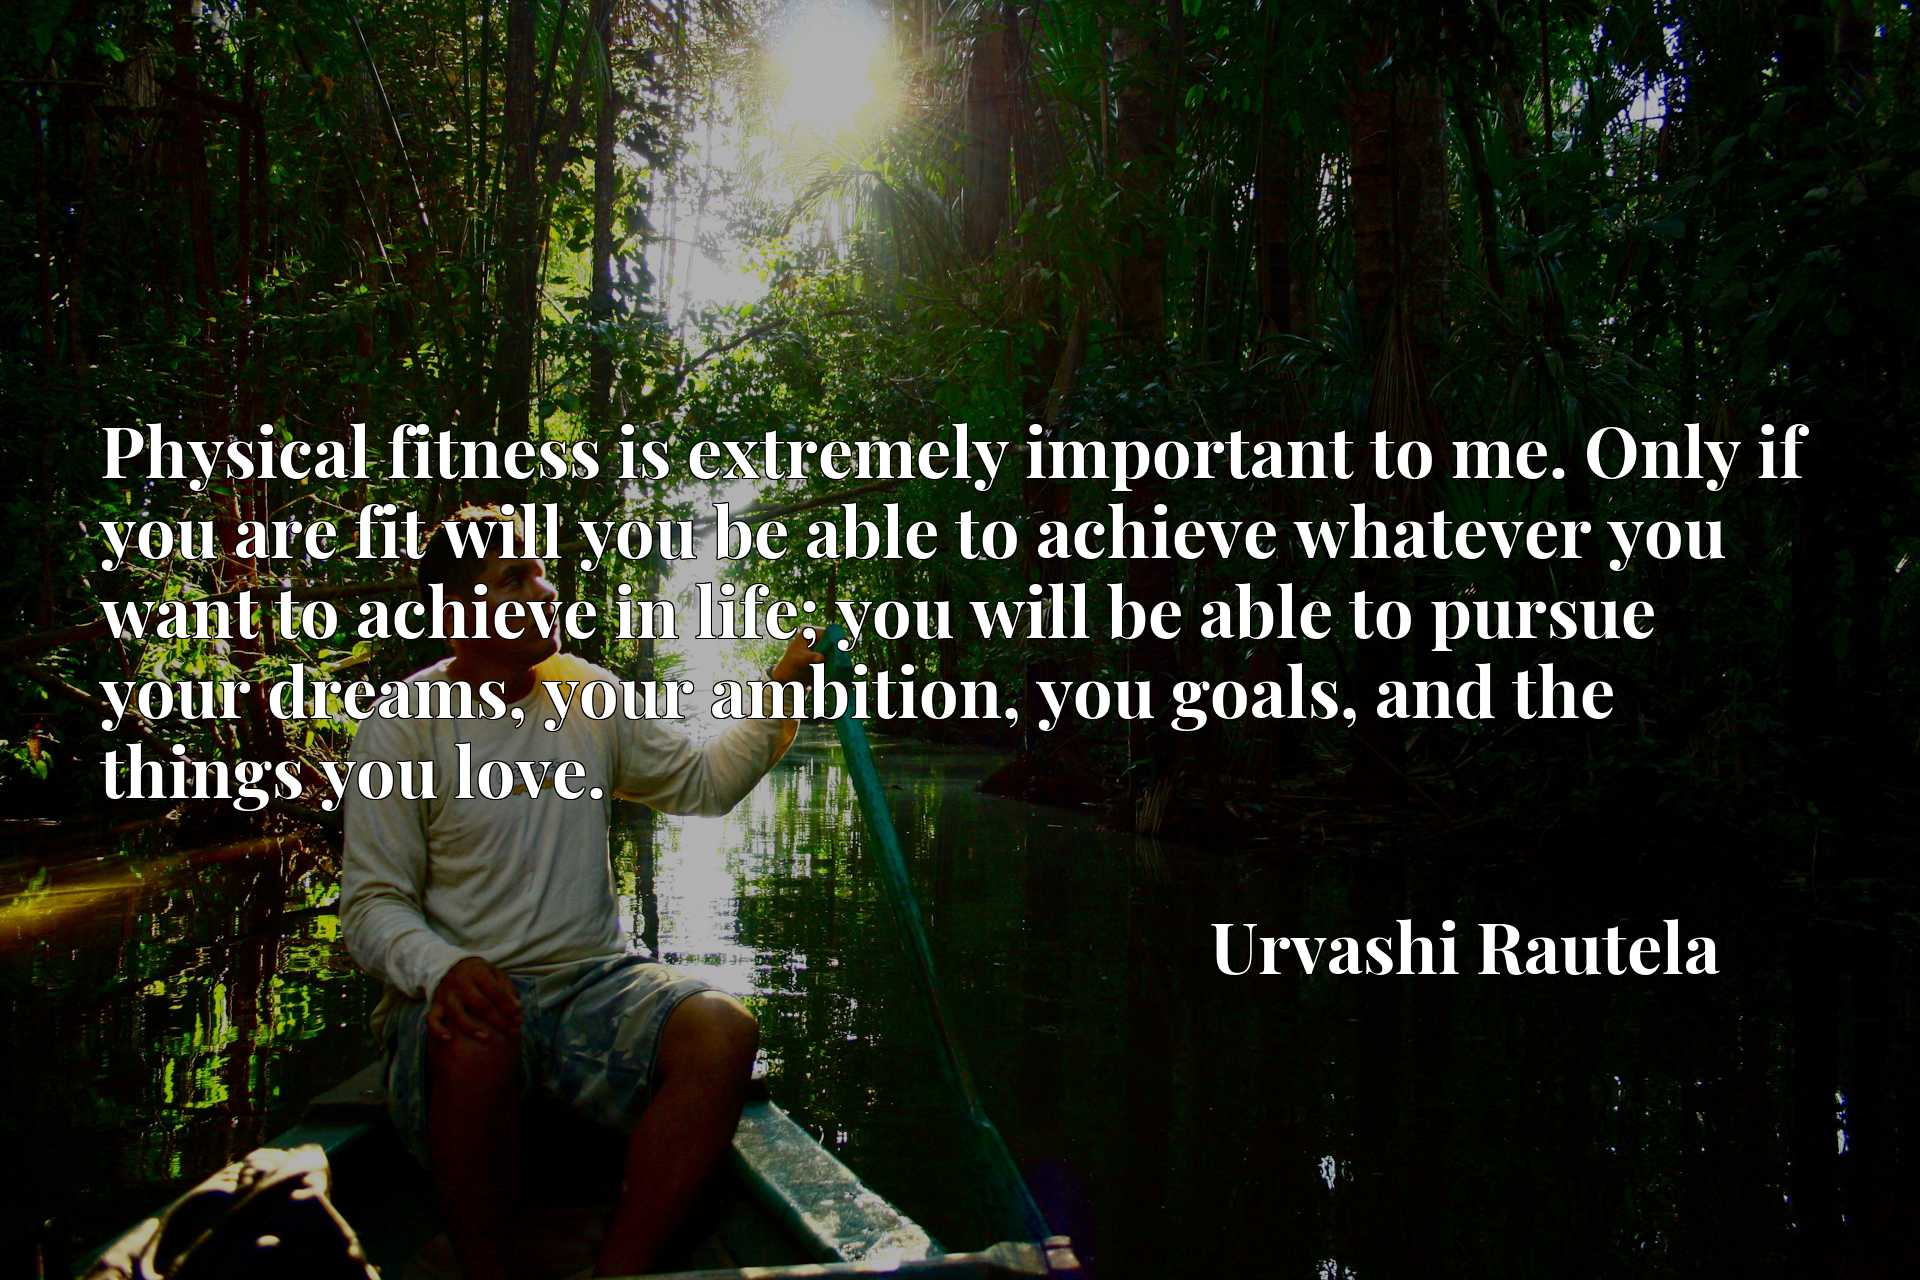 Physical fitness is extremely important to me. Only if you are fit will you be able to achieve whatever you want to achieve in life; you will be able to pursue your dreams, your ambition, you goals, and the things you love.